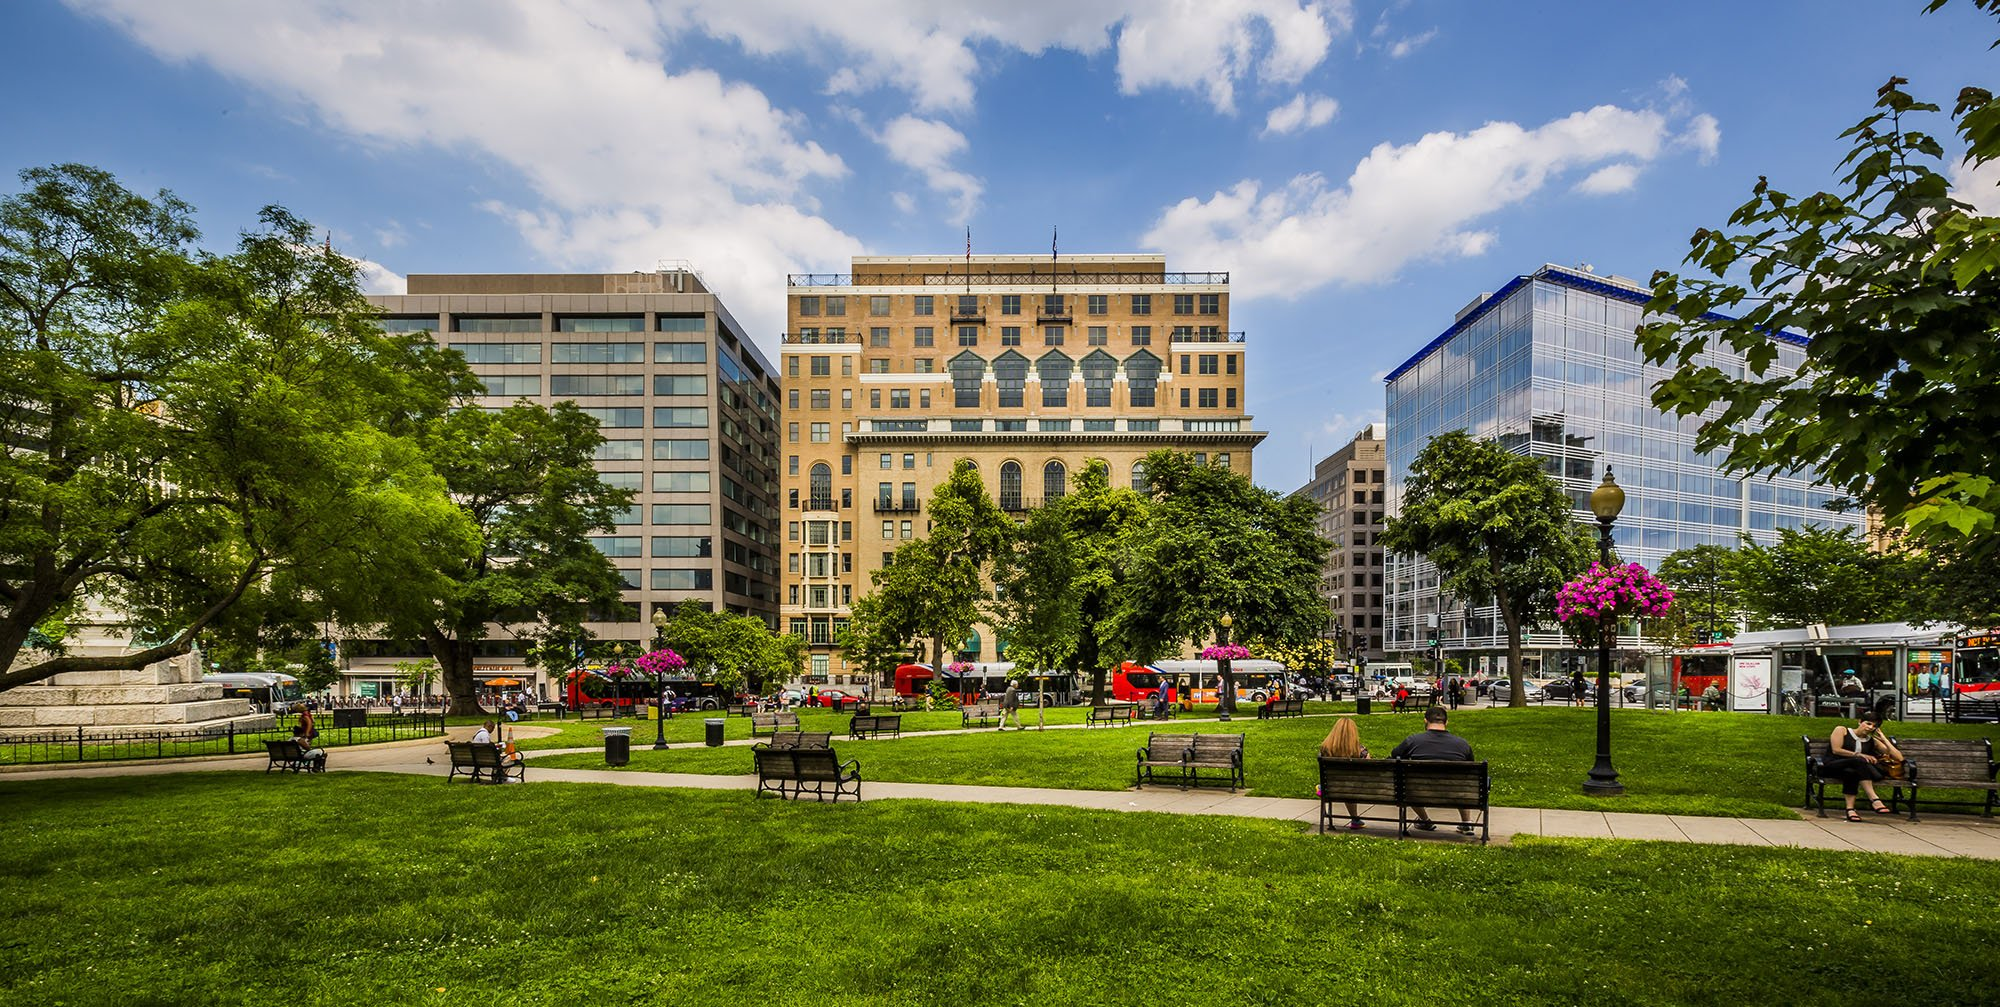 Army Navy Building in Farragut Square in Washington, DC